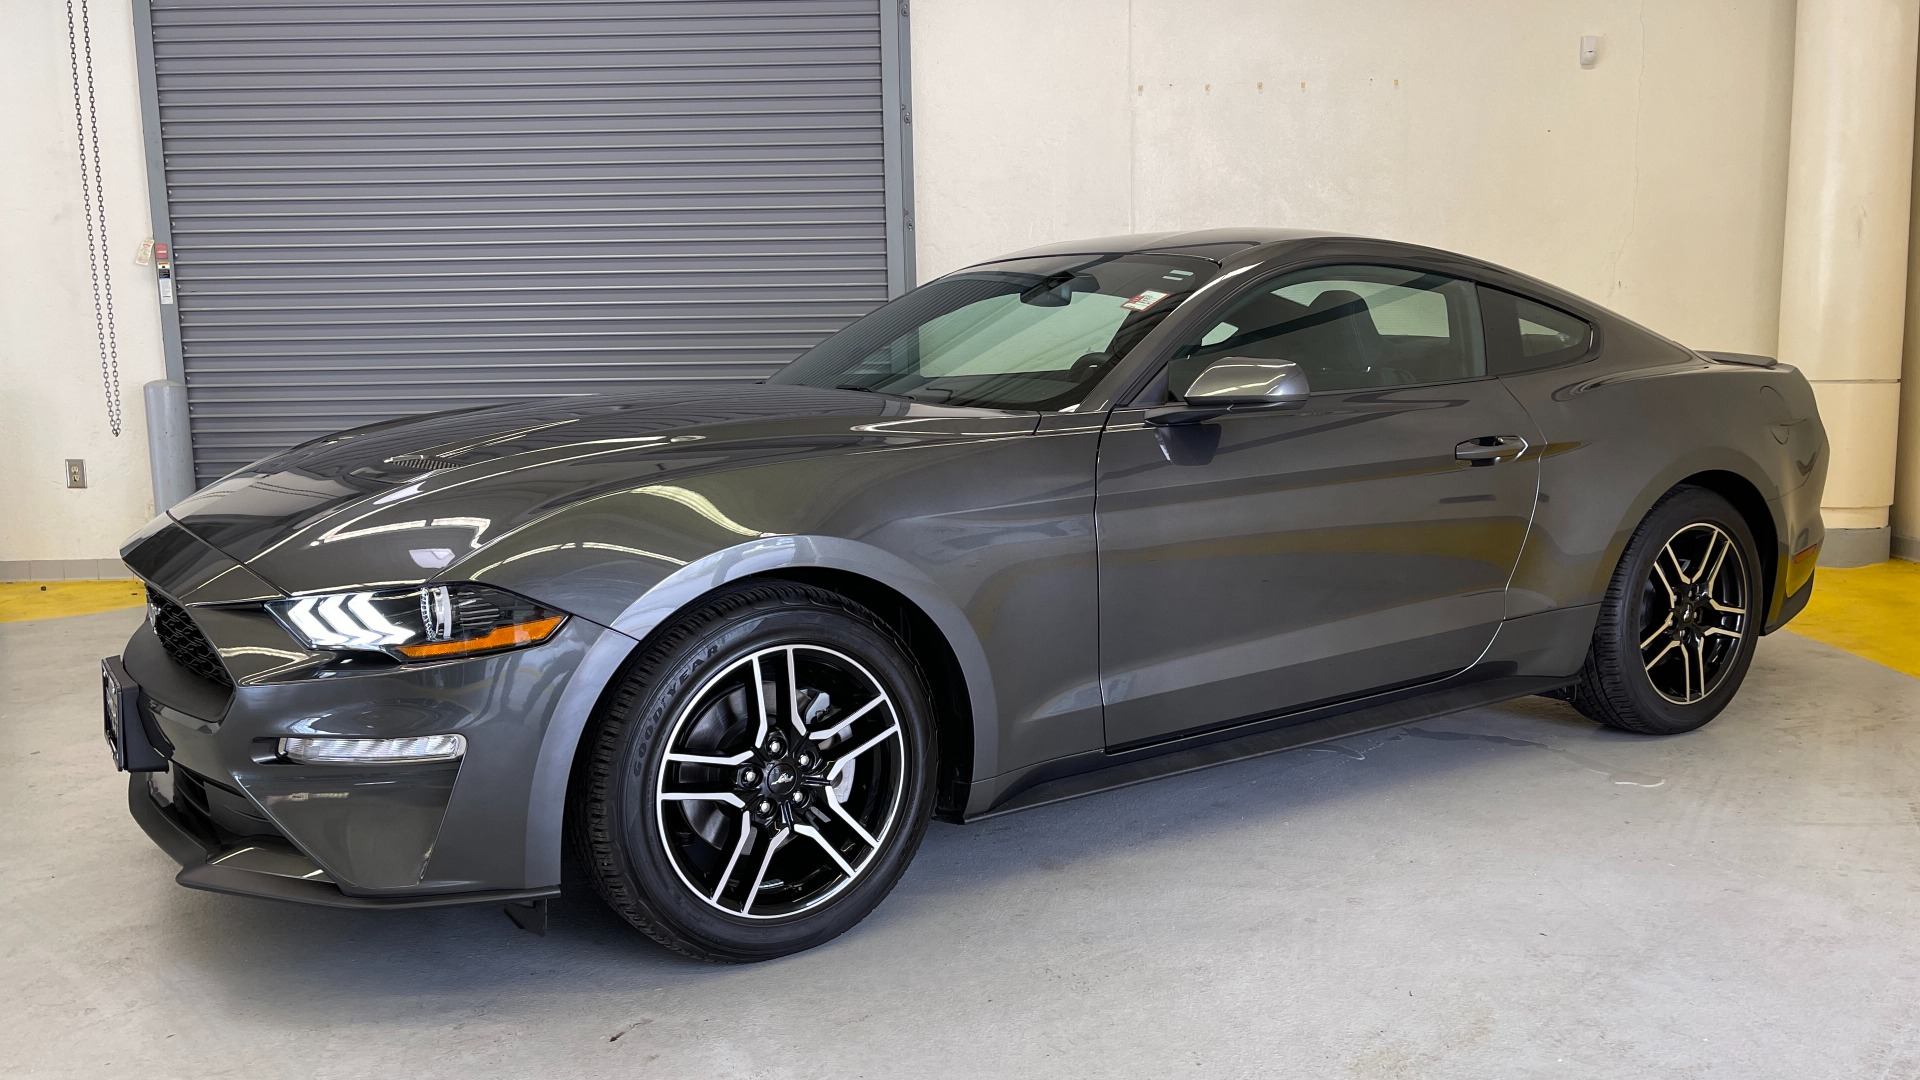 Used 2019 Ford MUSTANG ECOBOOST 2.3L / 10-SPD AUTO / SYNC3 8INCH SCREEN / TRACK APPS / REARVIEW for sale $31,795 at Formula Imports in Charlotte NC 28227 3